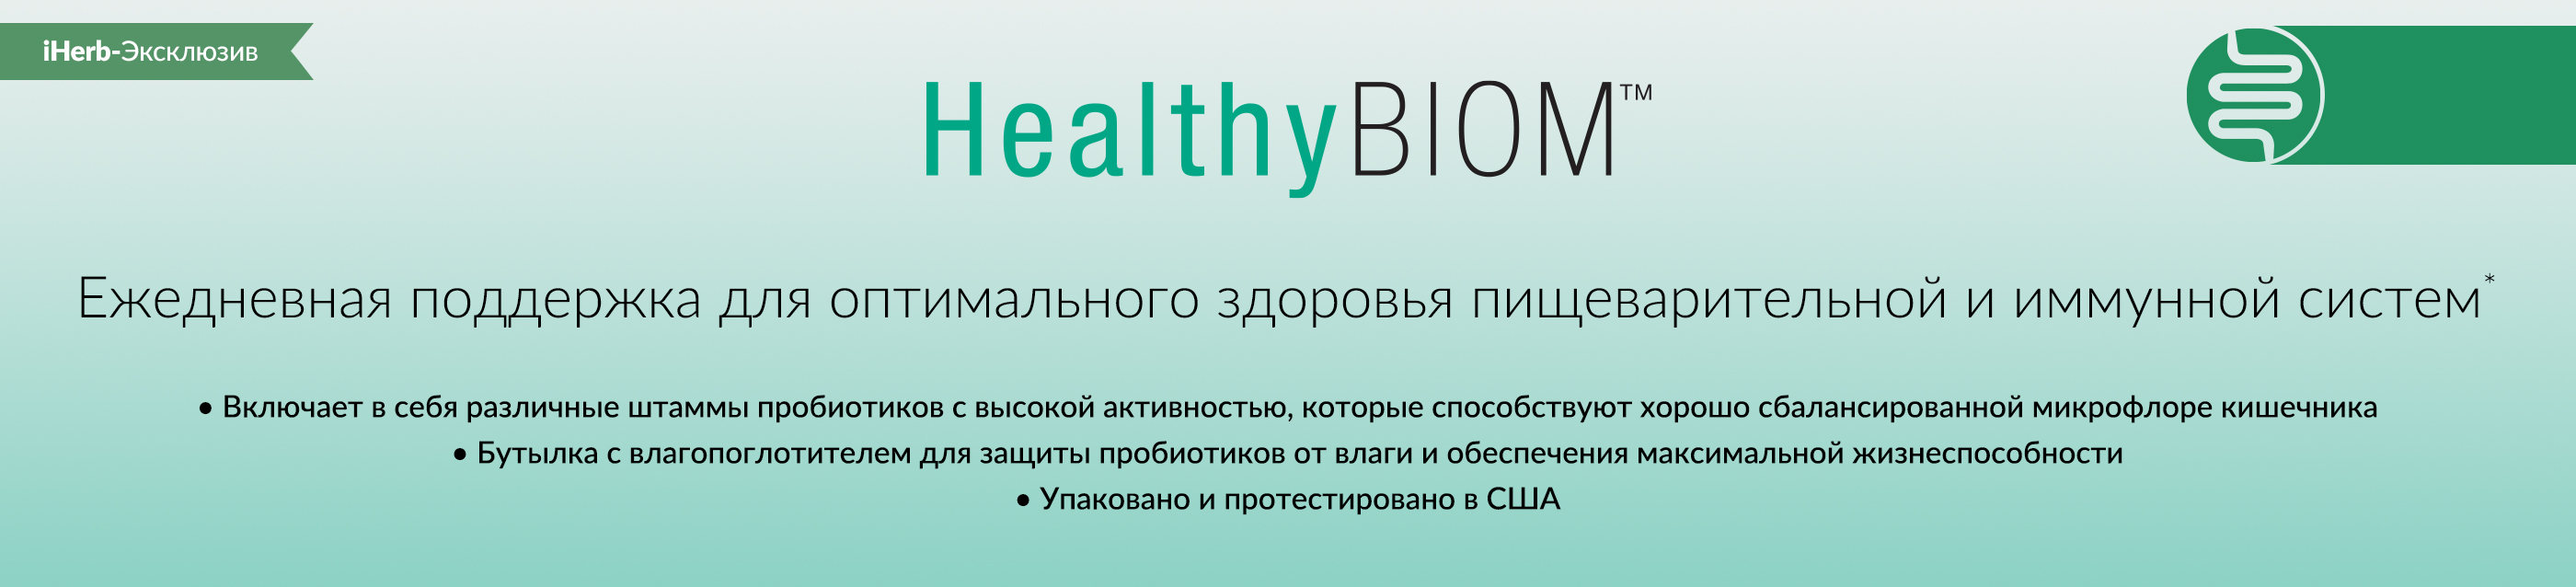 HealthyBiom